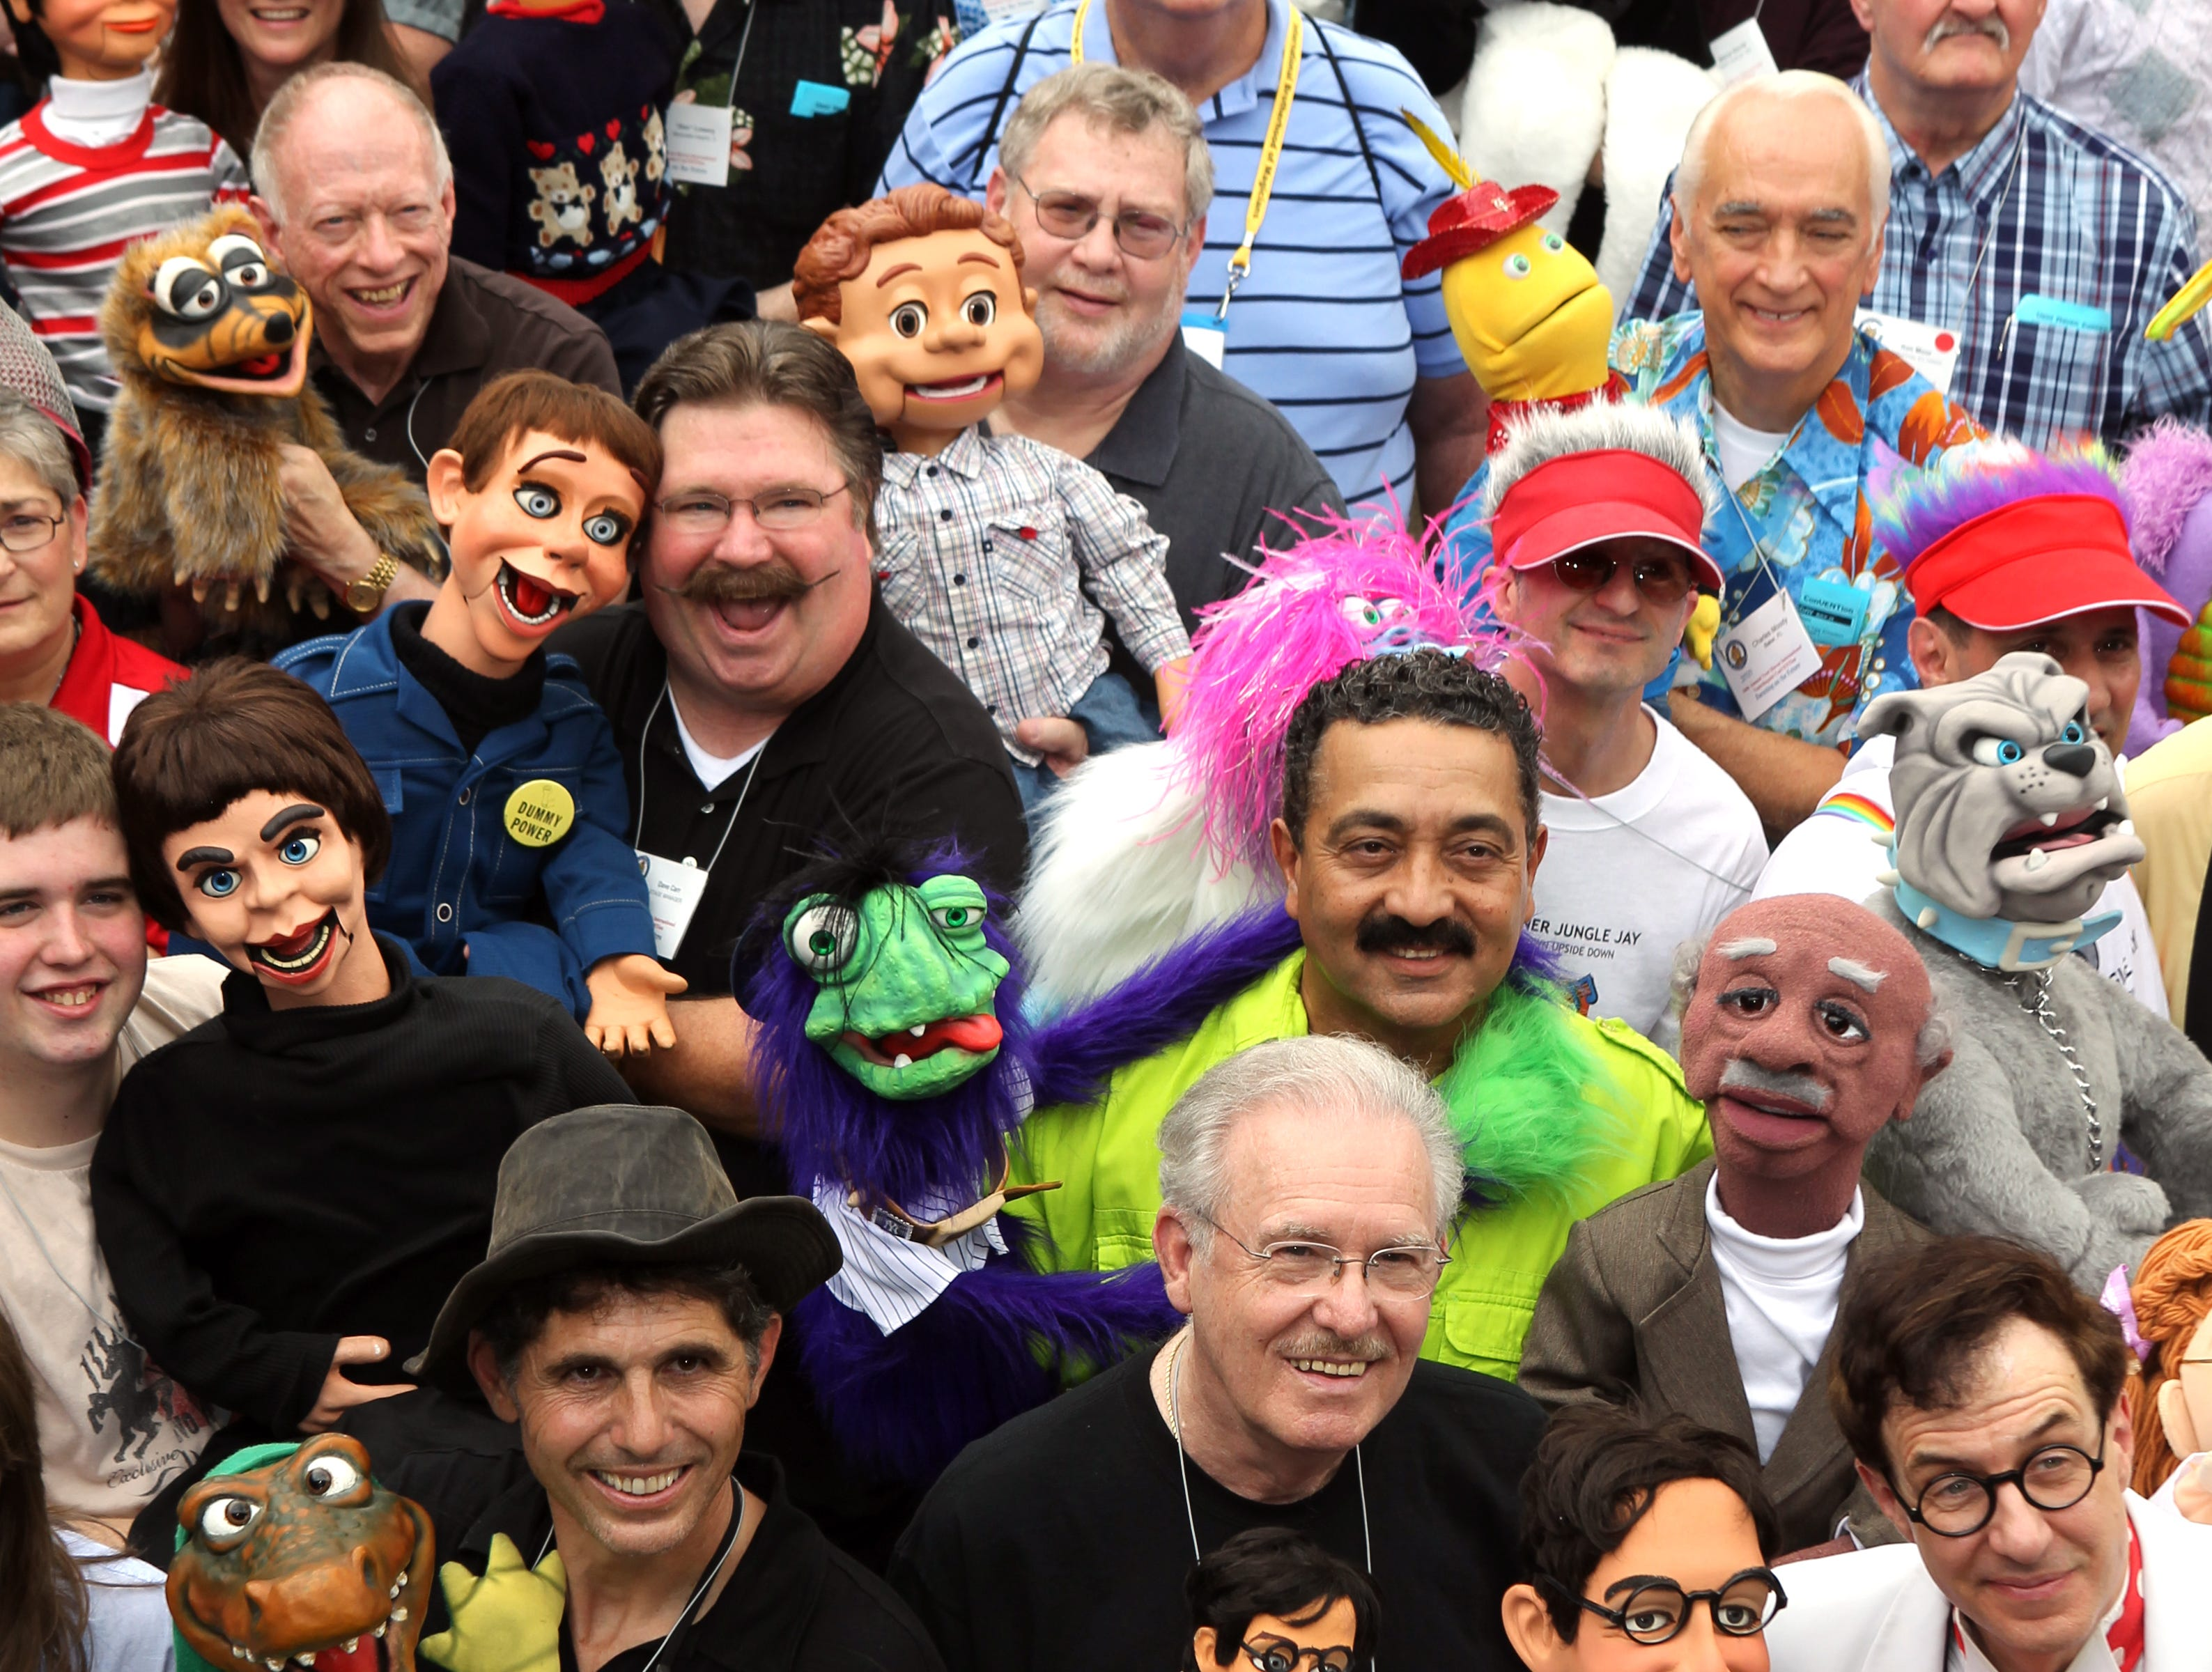 Ventriloquists and their puppets gather at the Drawbridge Inn, Fort Mitchell, to have a group photo made as part of the 34th Annual Vent Haven International Ventriloquist ConVENTion.  More tha 400 ventriloquists from 13 countries attended.